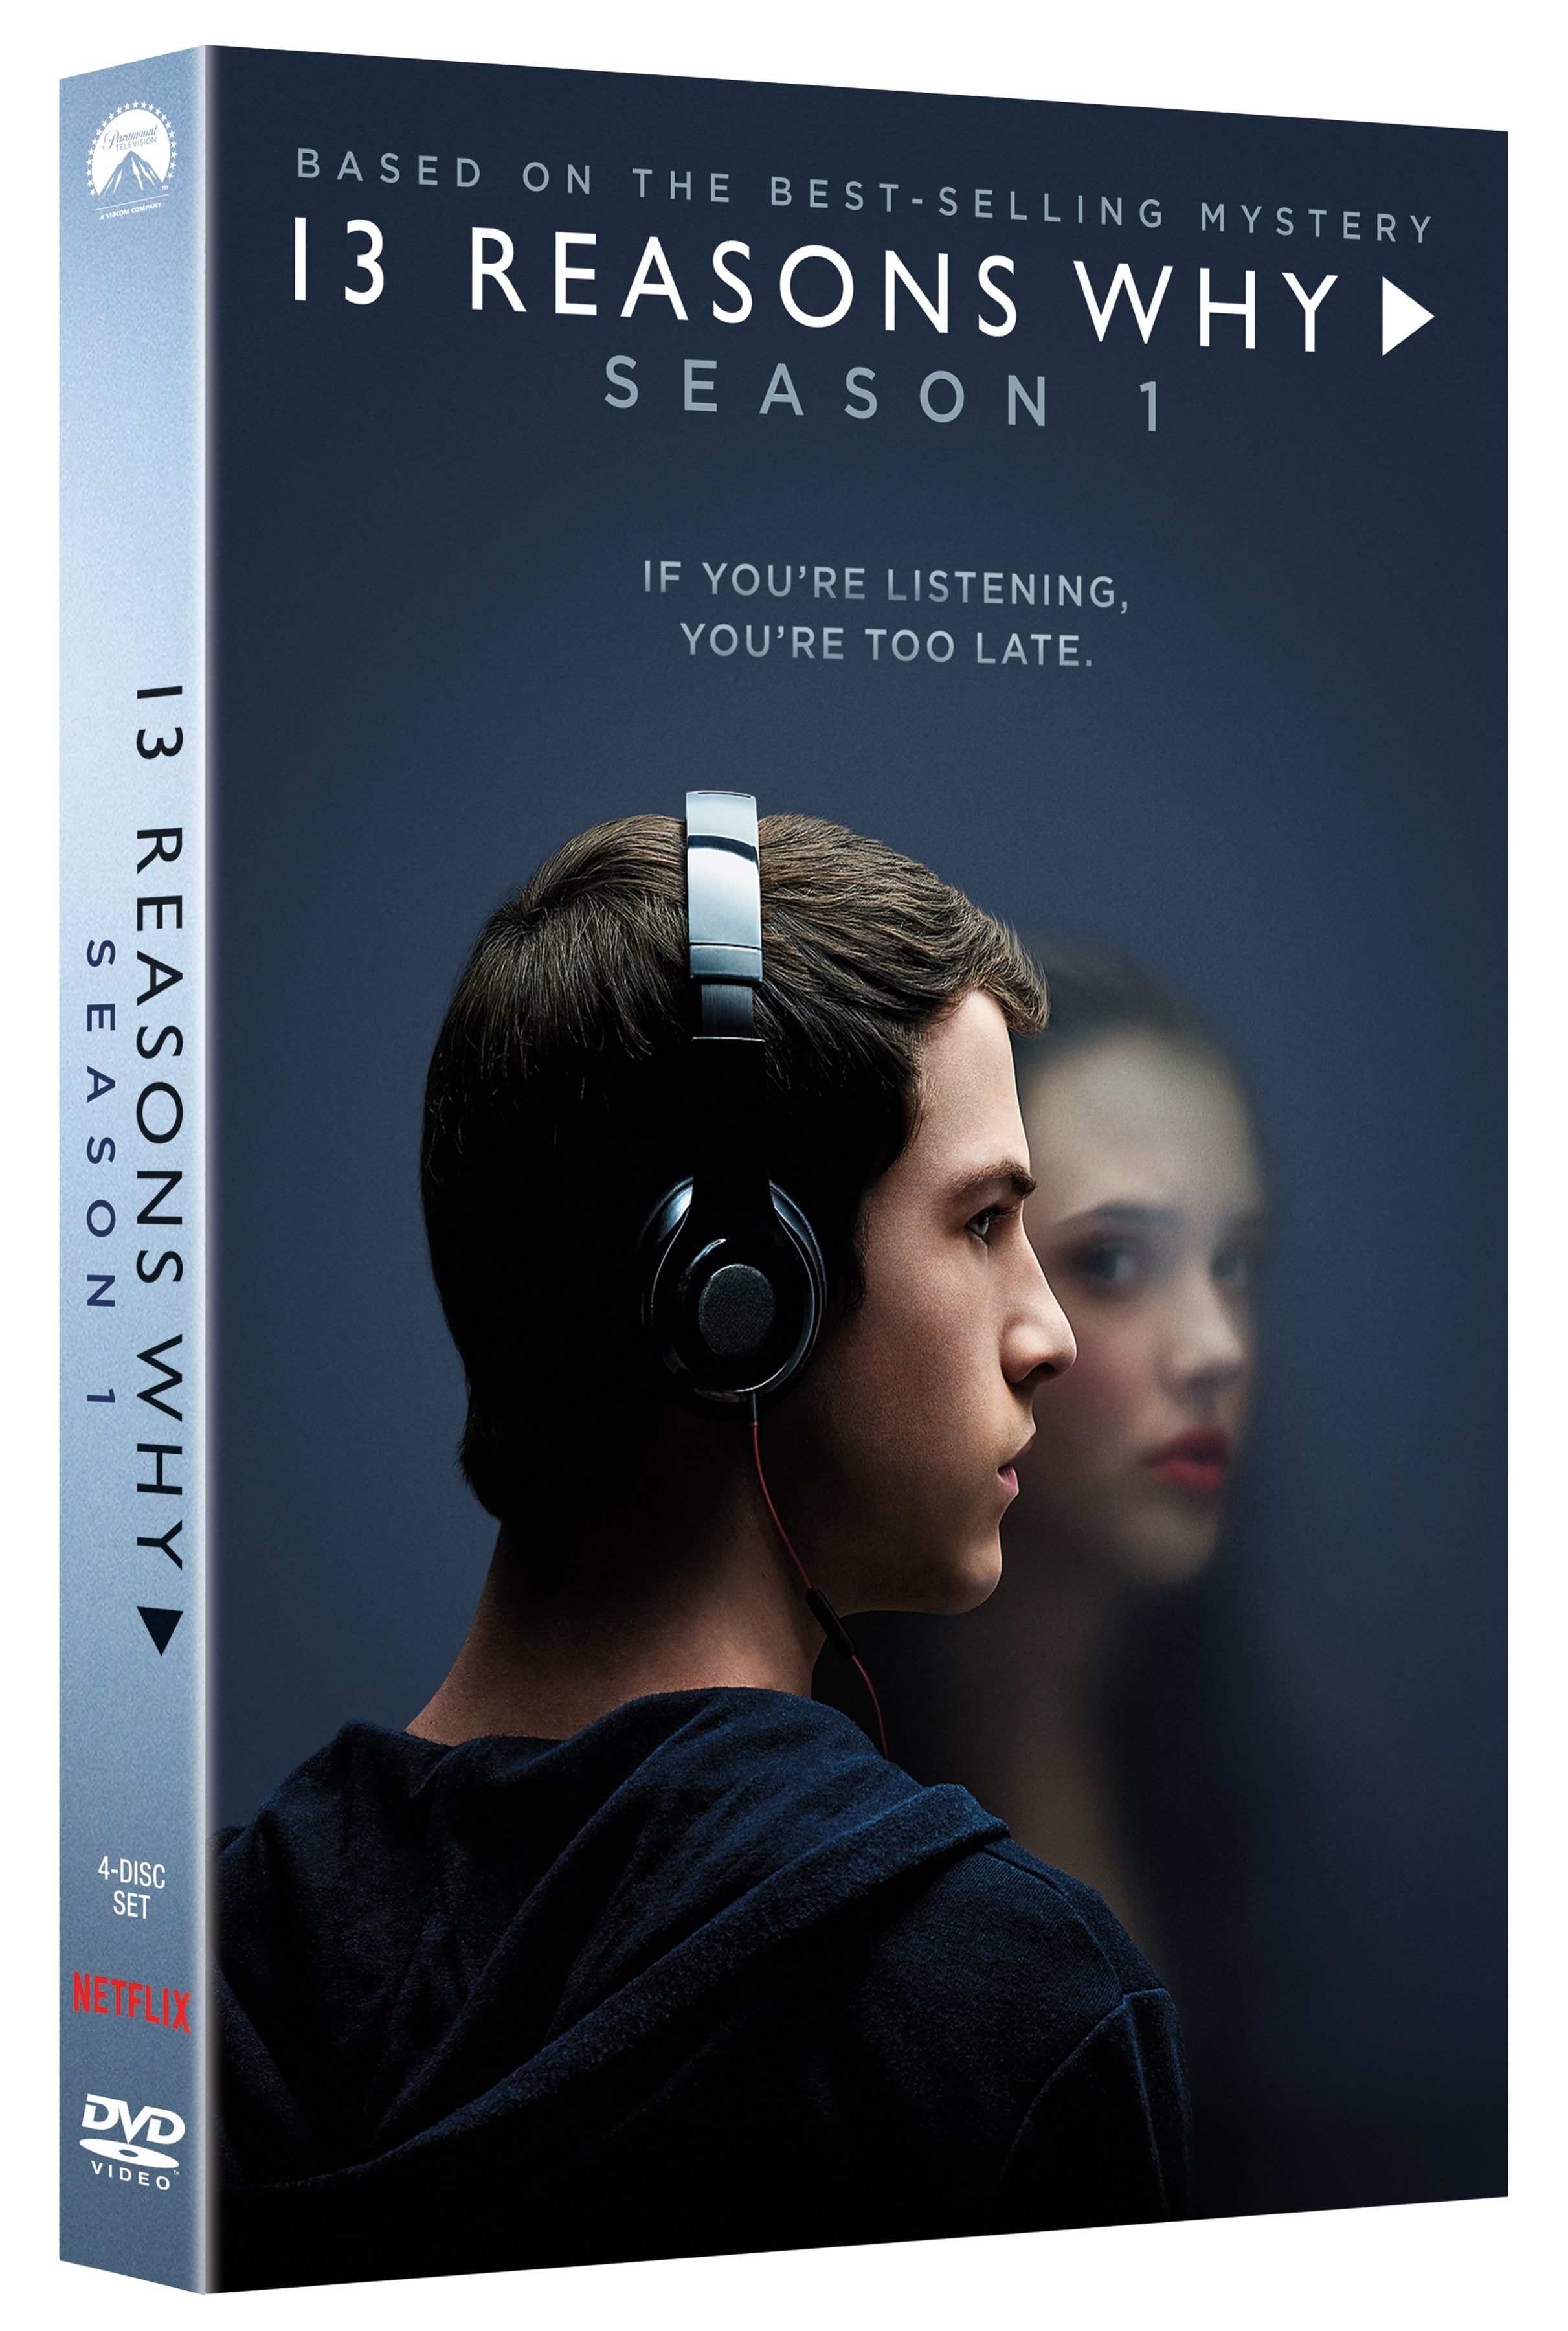 13 Reasons Why Season One DVD Review